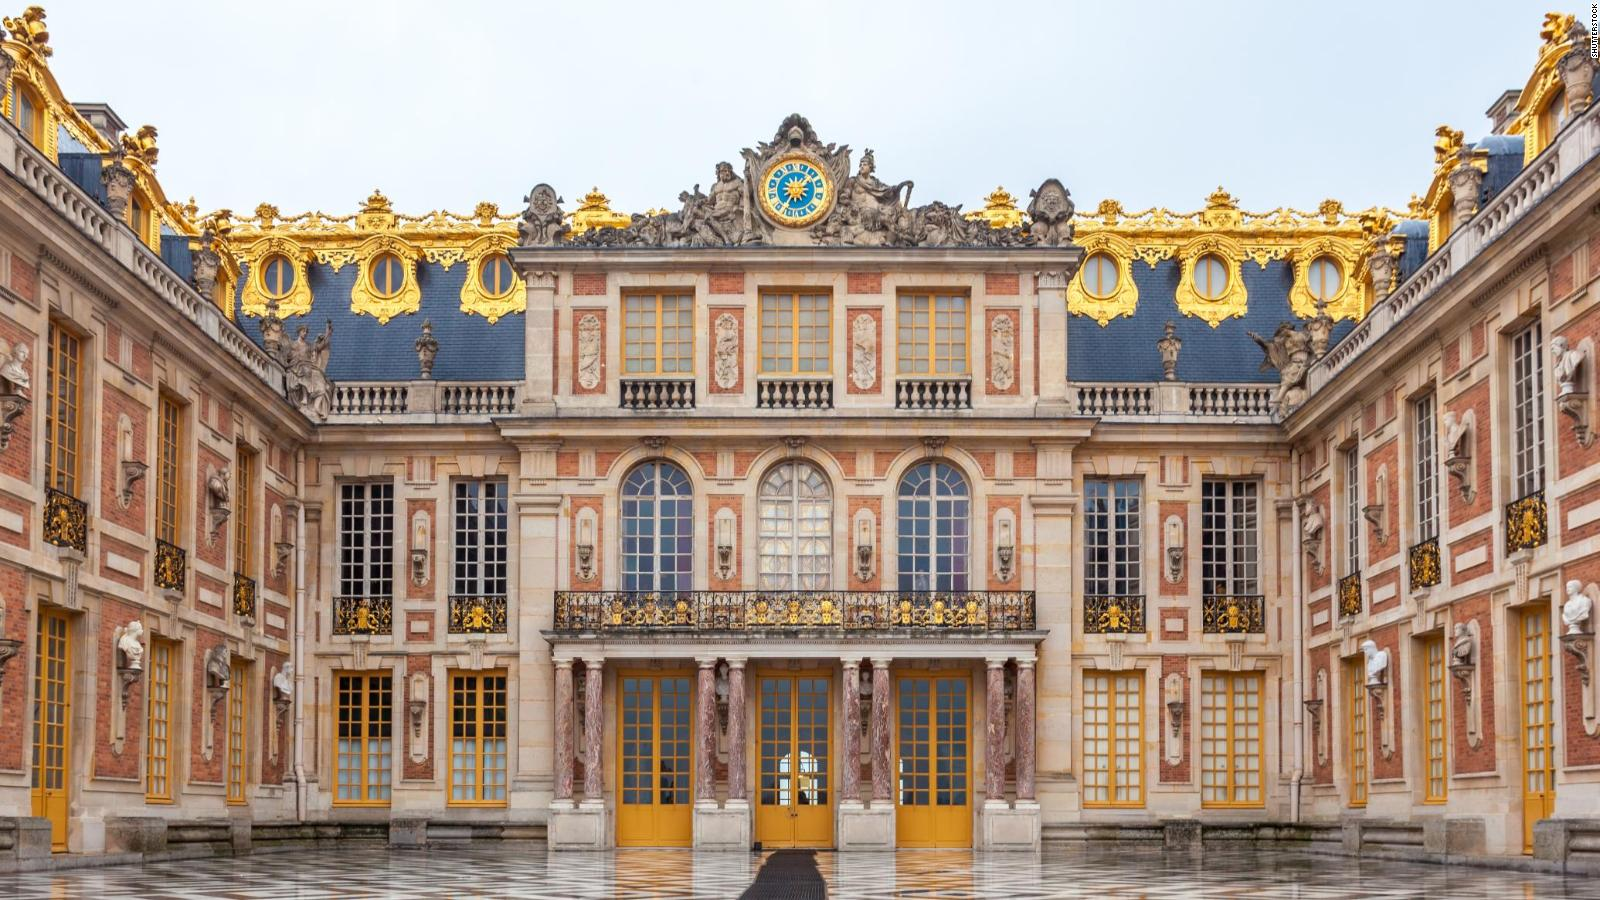 Hotel on Versailles grounds: Le Grand Contrôle to open in spring 2020 | CNN  Travel